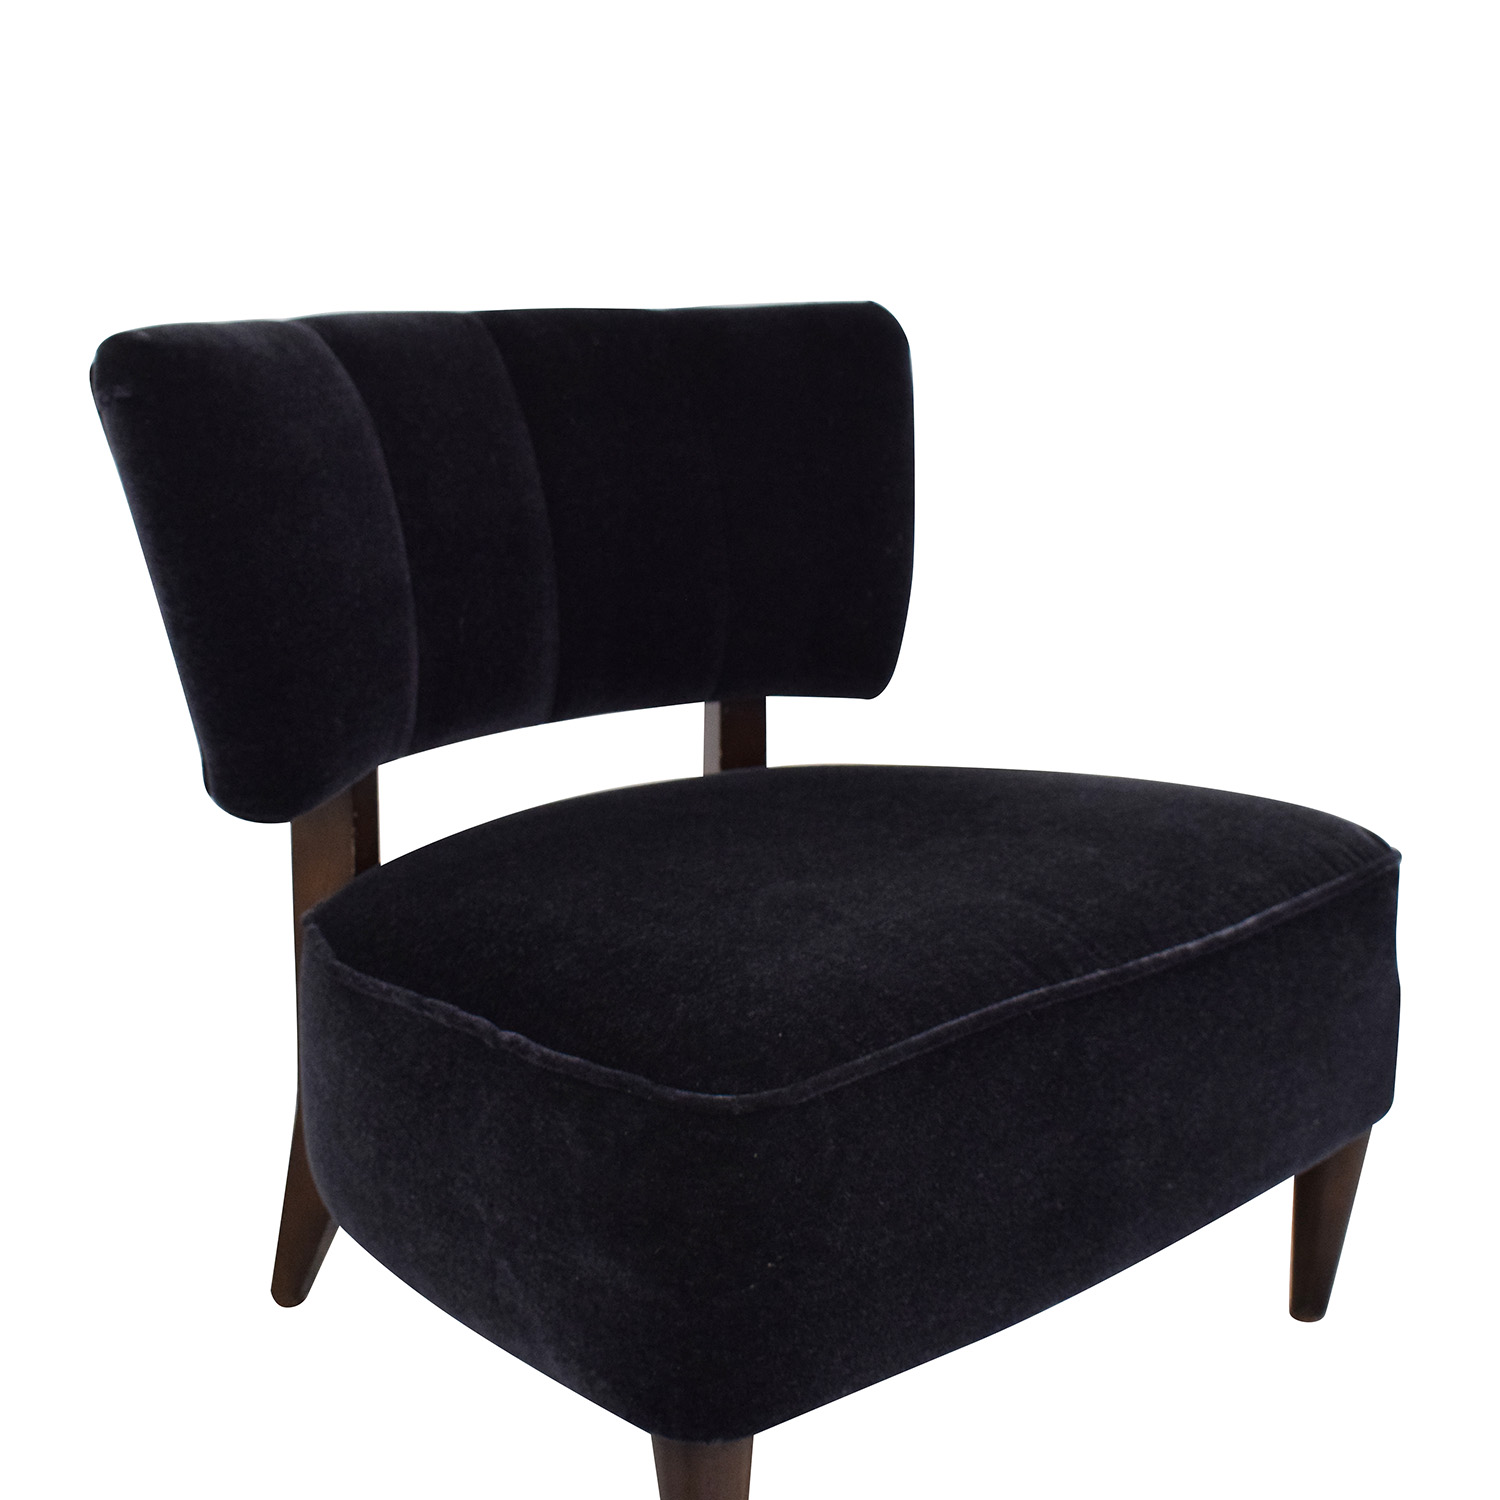 Room & Board Room & Board Accent Chair dimensions